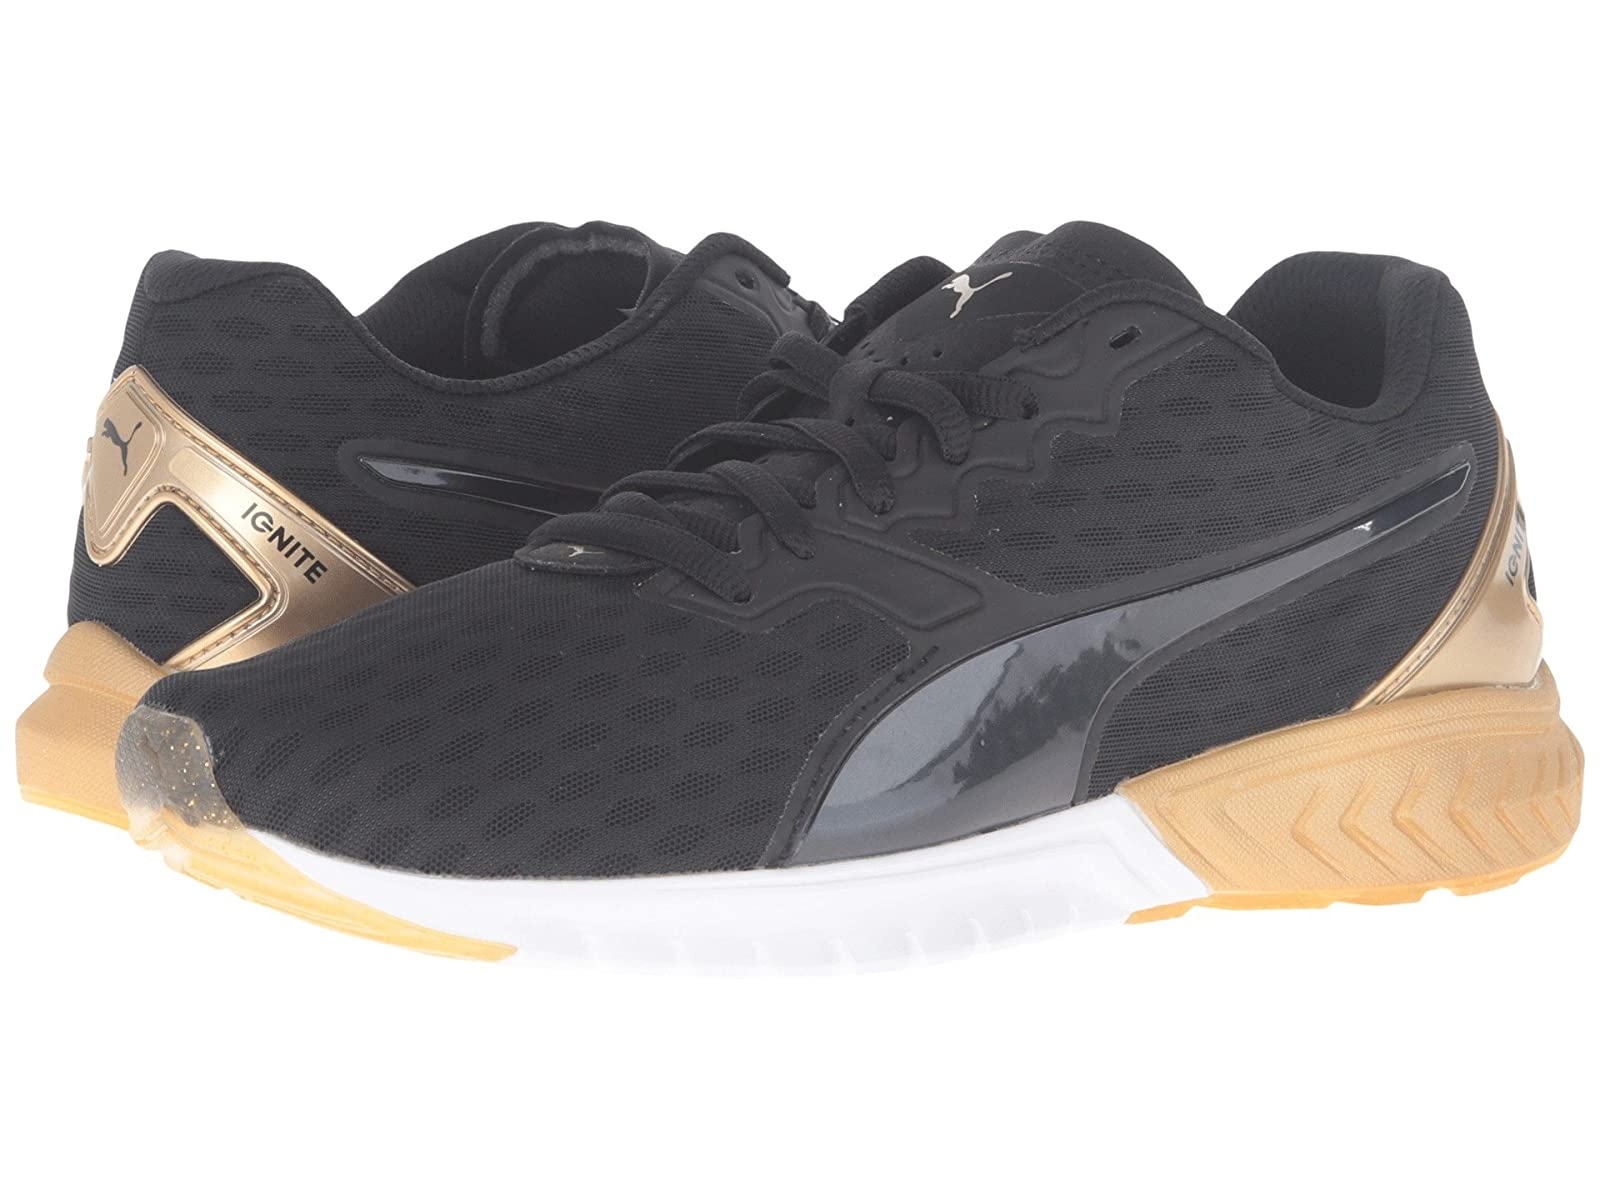 PUMA Ignite Dual GoldCheap and distinctive eye-catching shoes